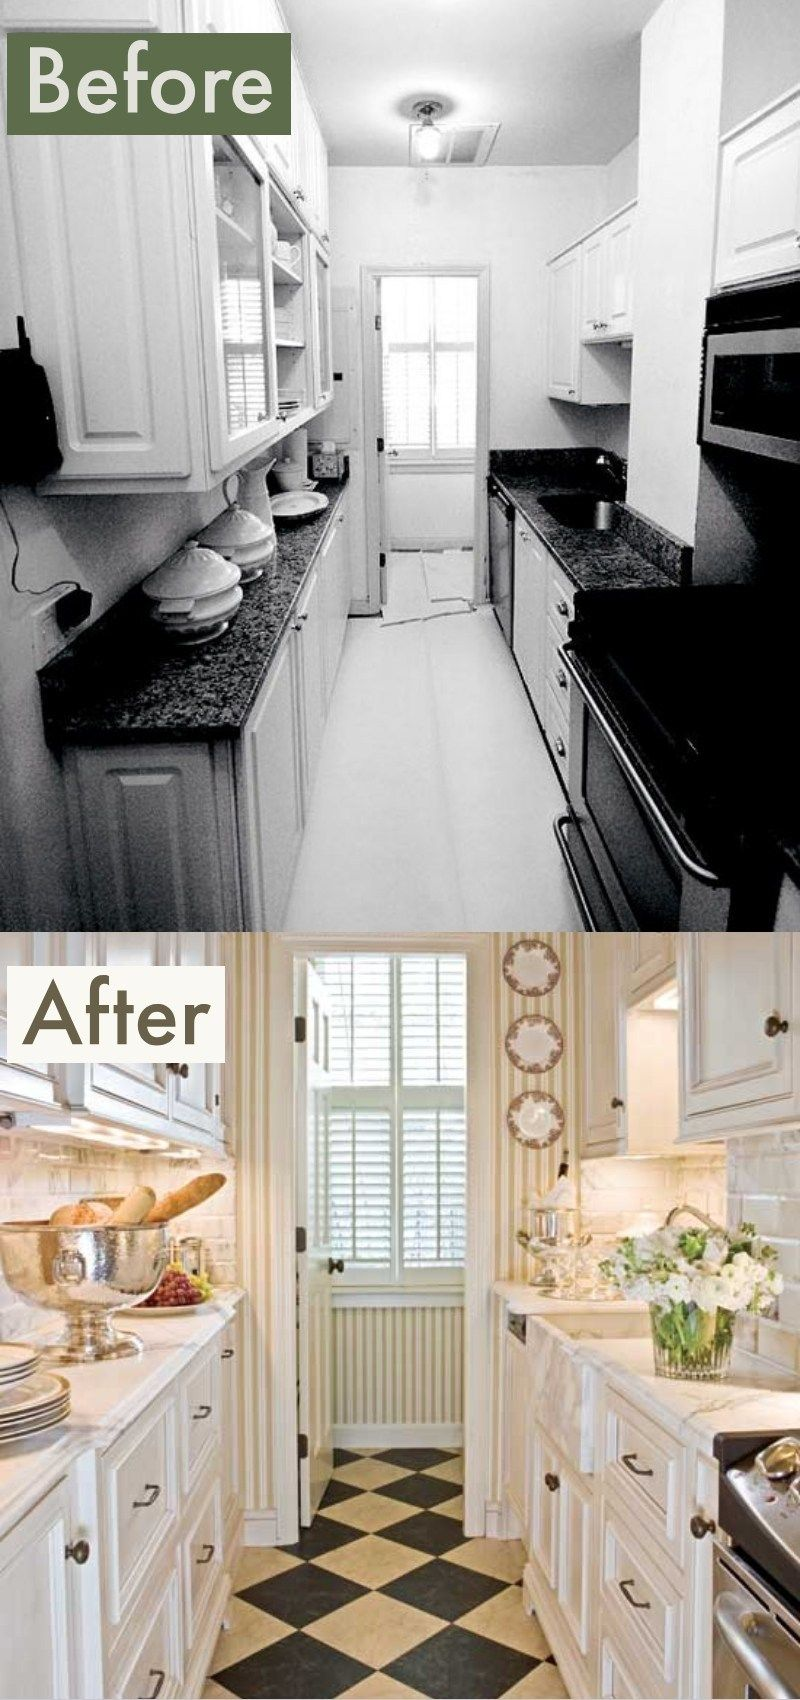 Galley Kitchen Remodel Before And After Ideas 2019 Trends Onabudget Small Beforeandaf Kitchen Remodel Small Galley Kitchen Renovation Galley Kitchen Remodel